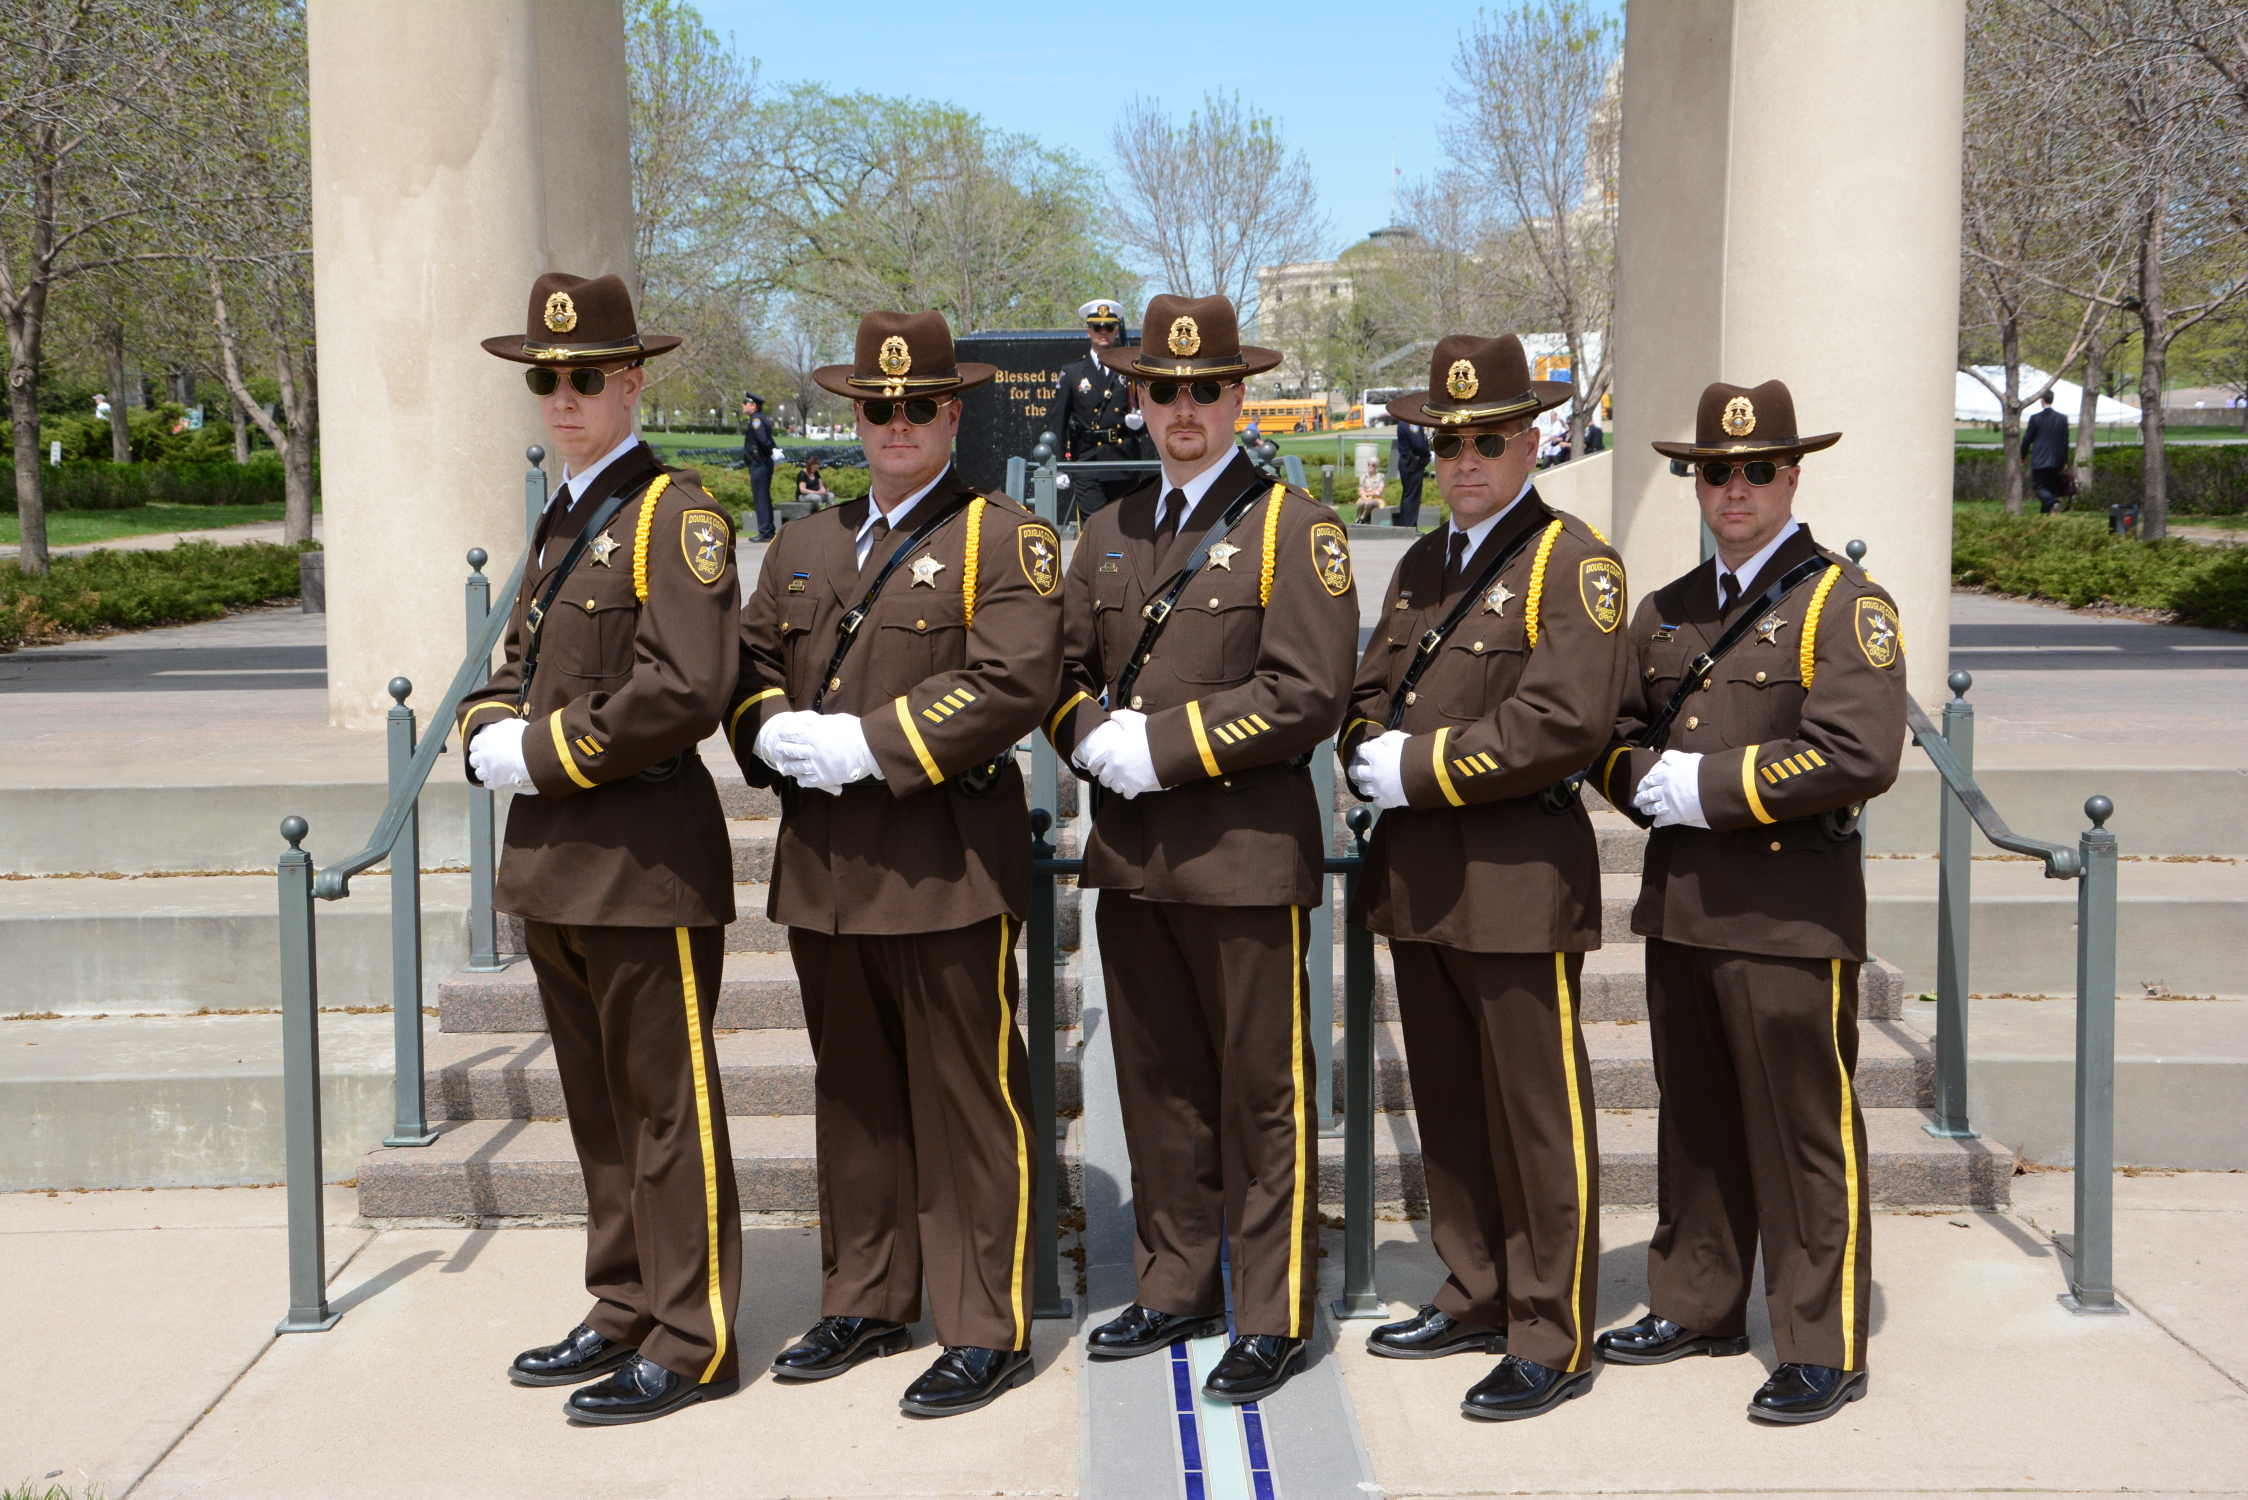 Douglas County Honor Guard